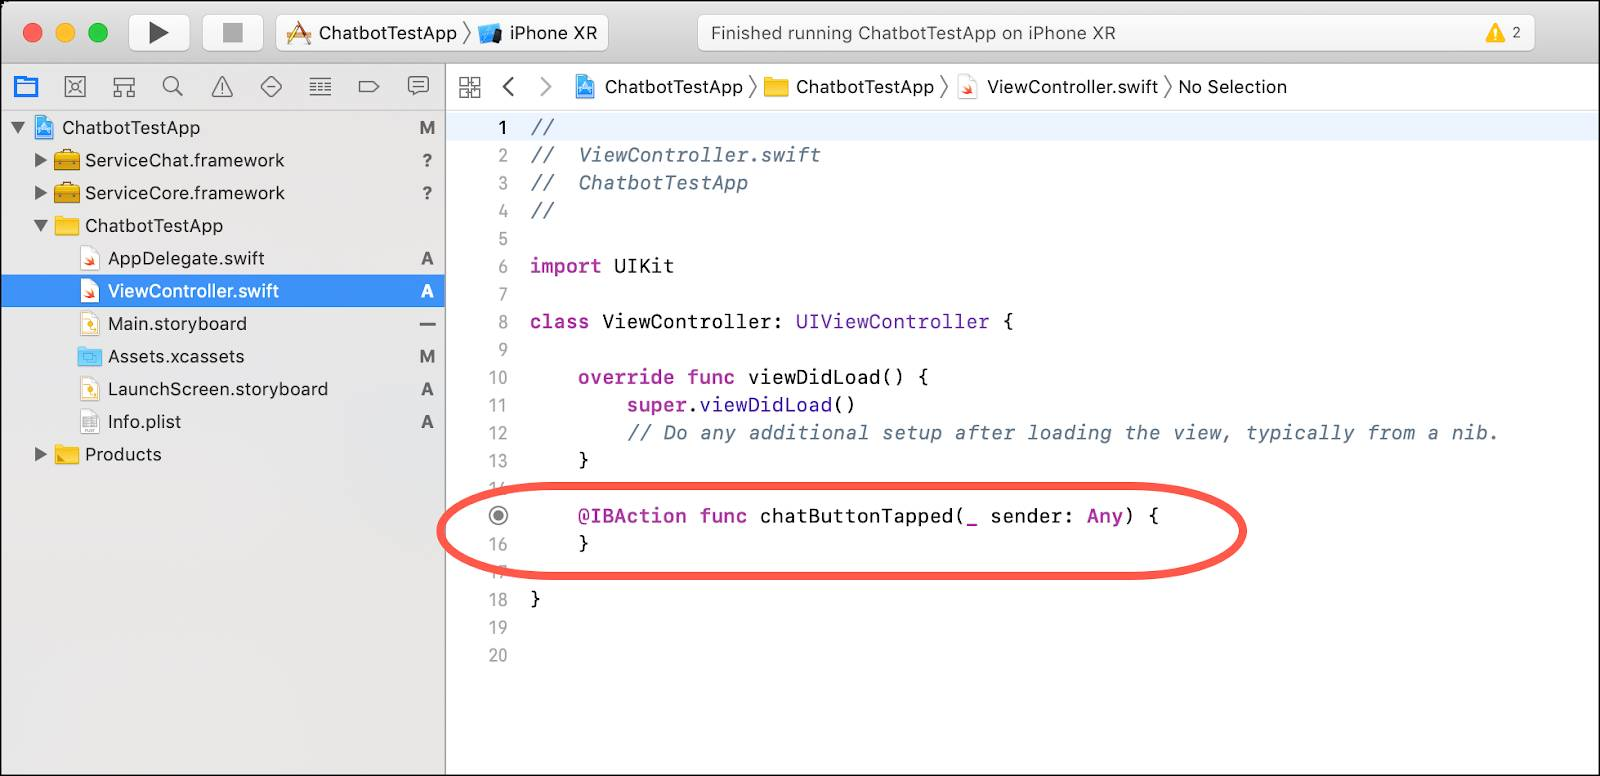 The ViewController.swift class selected and the @IBAction func method highlighted by a red rounded box.